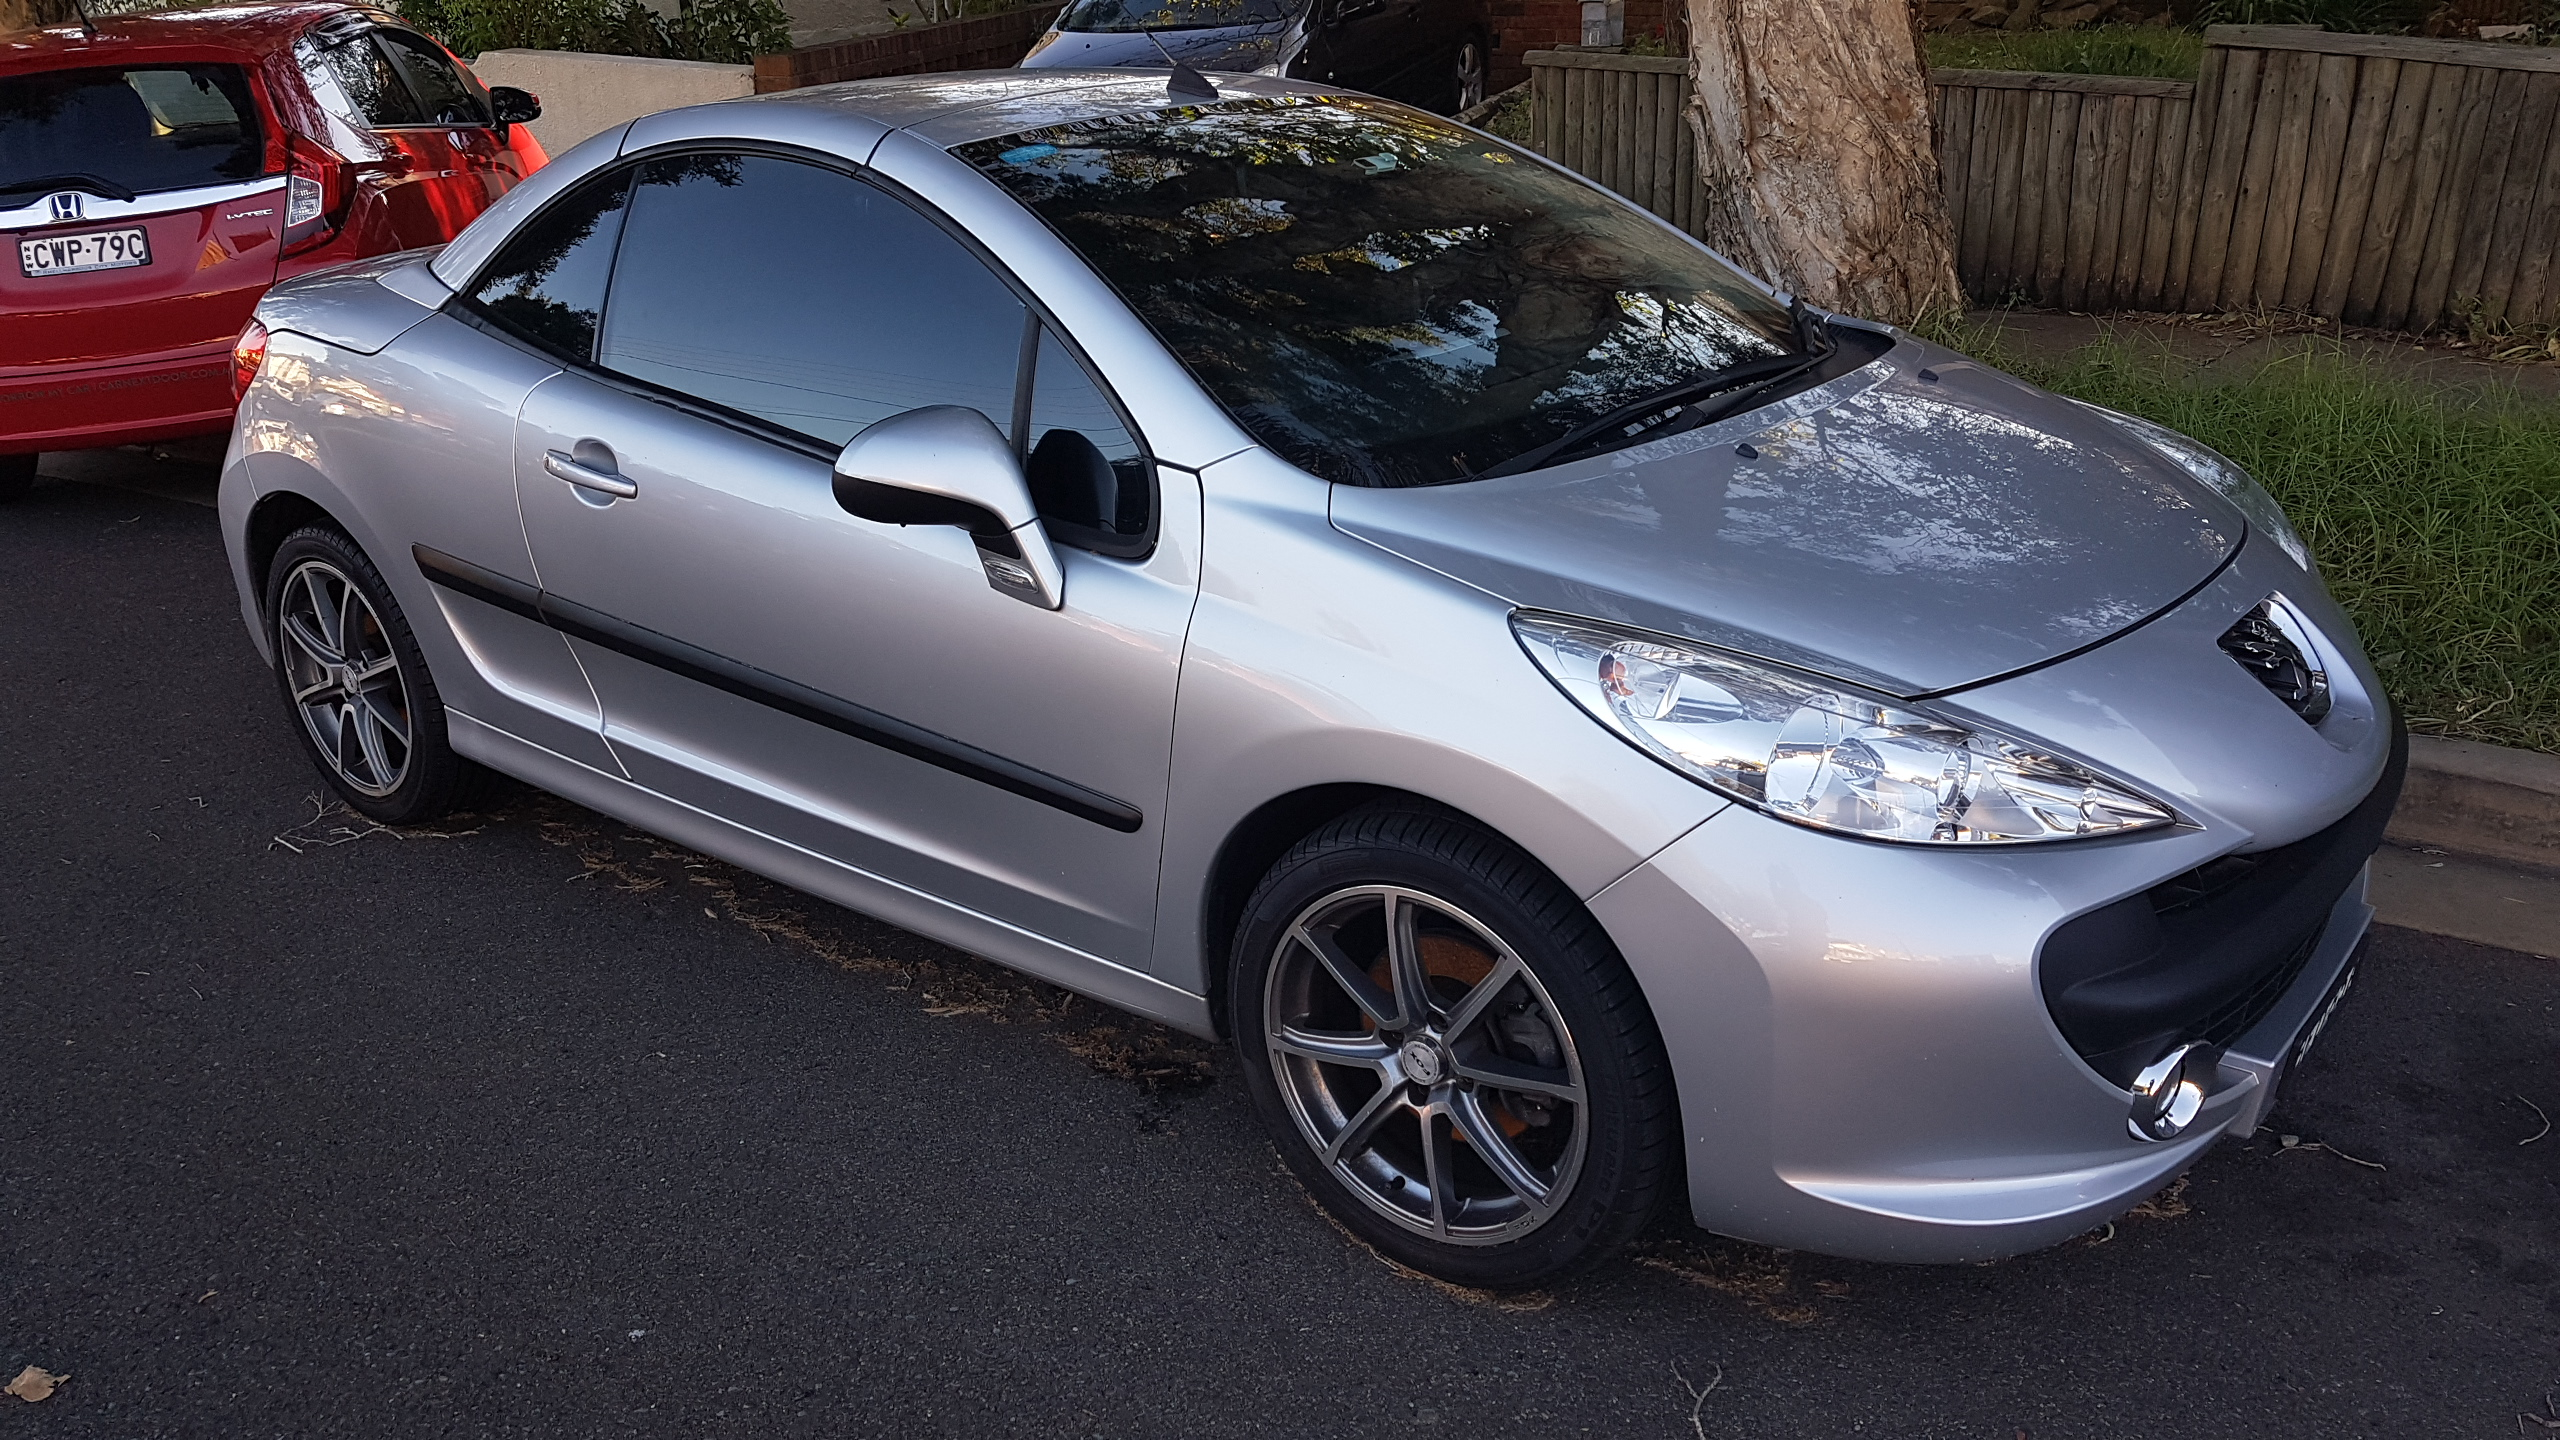 Picture of Peter's 2007 Peugeot 207 Convertible